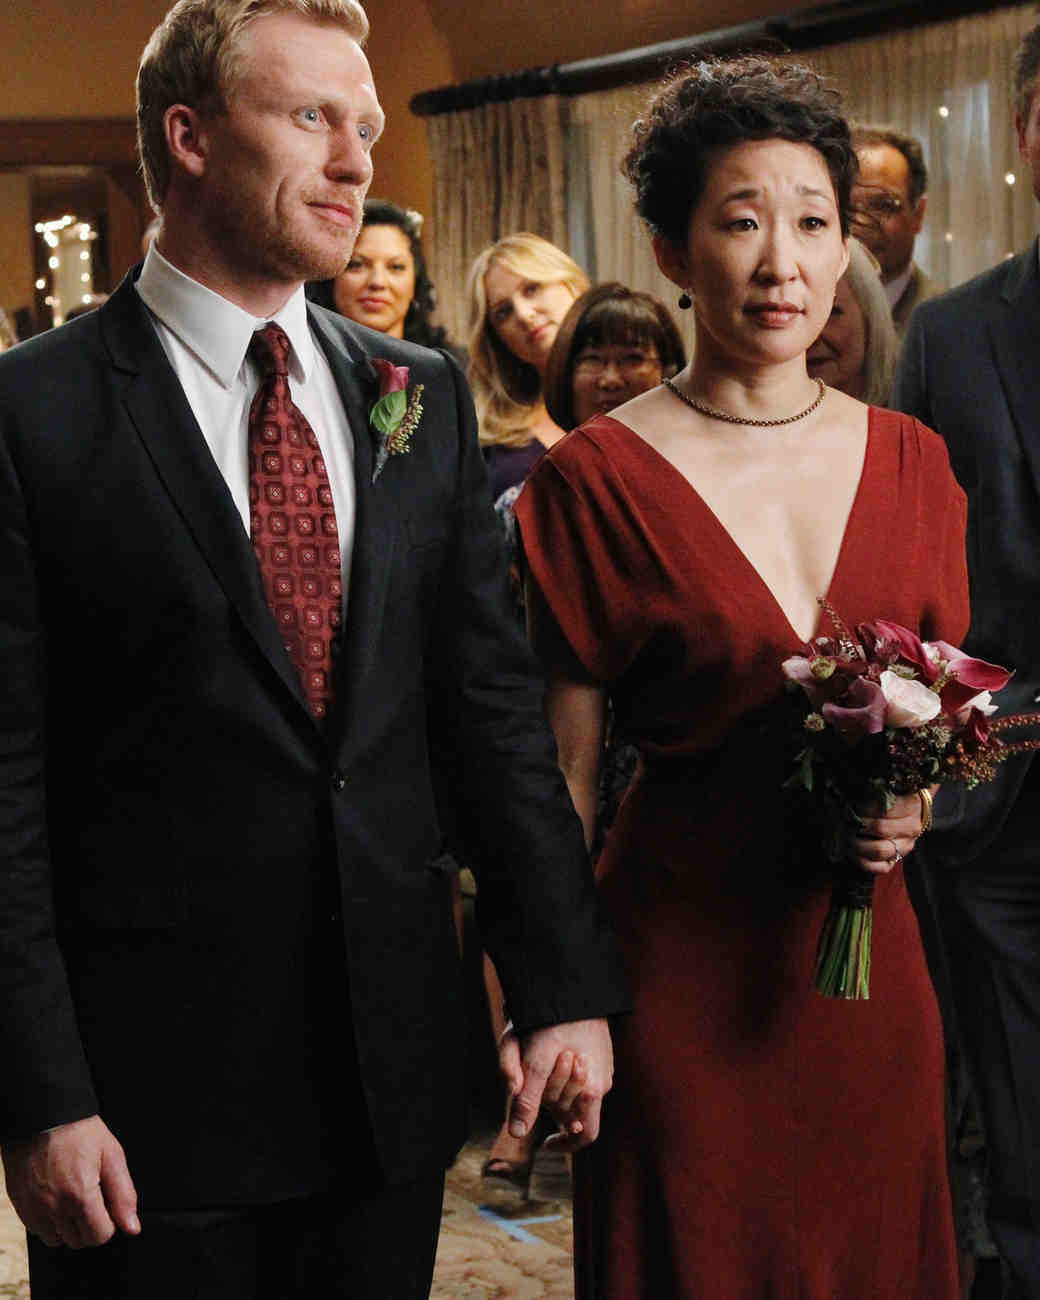 tv-wedding-dresses-greys-anatomy-cristina-yang-dress-1115.jpg